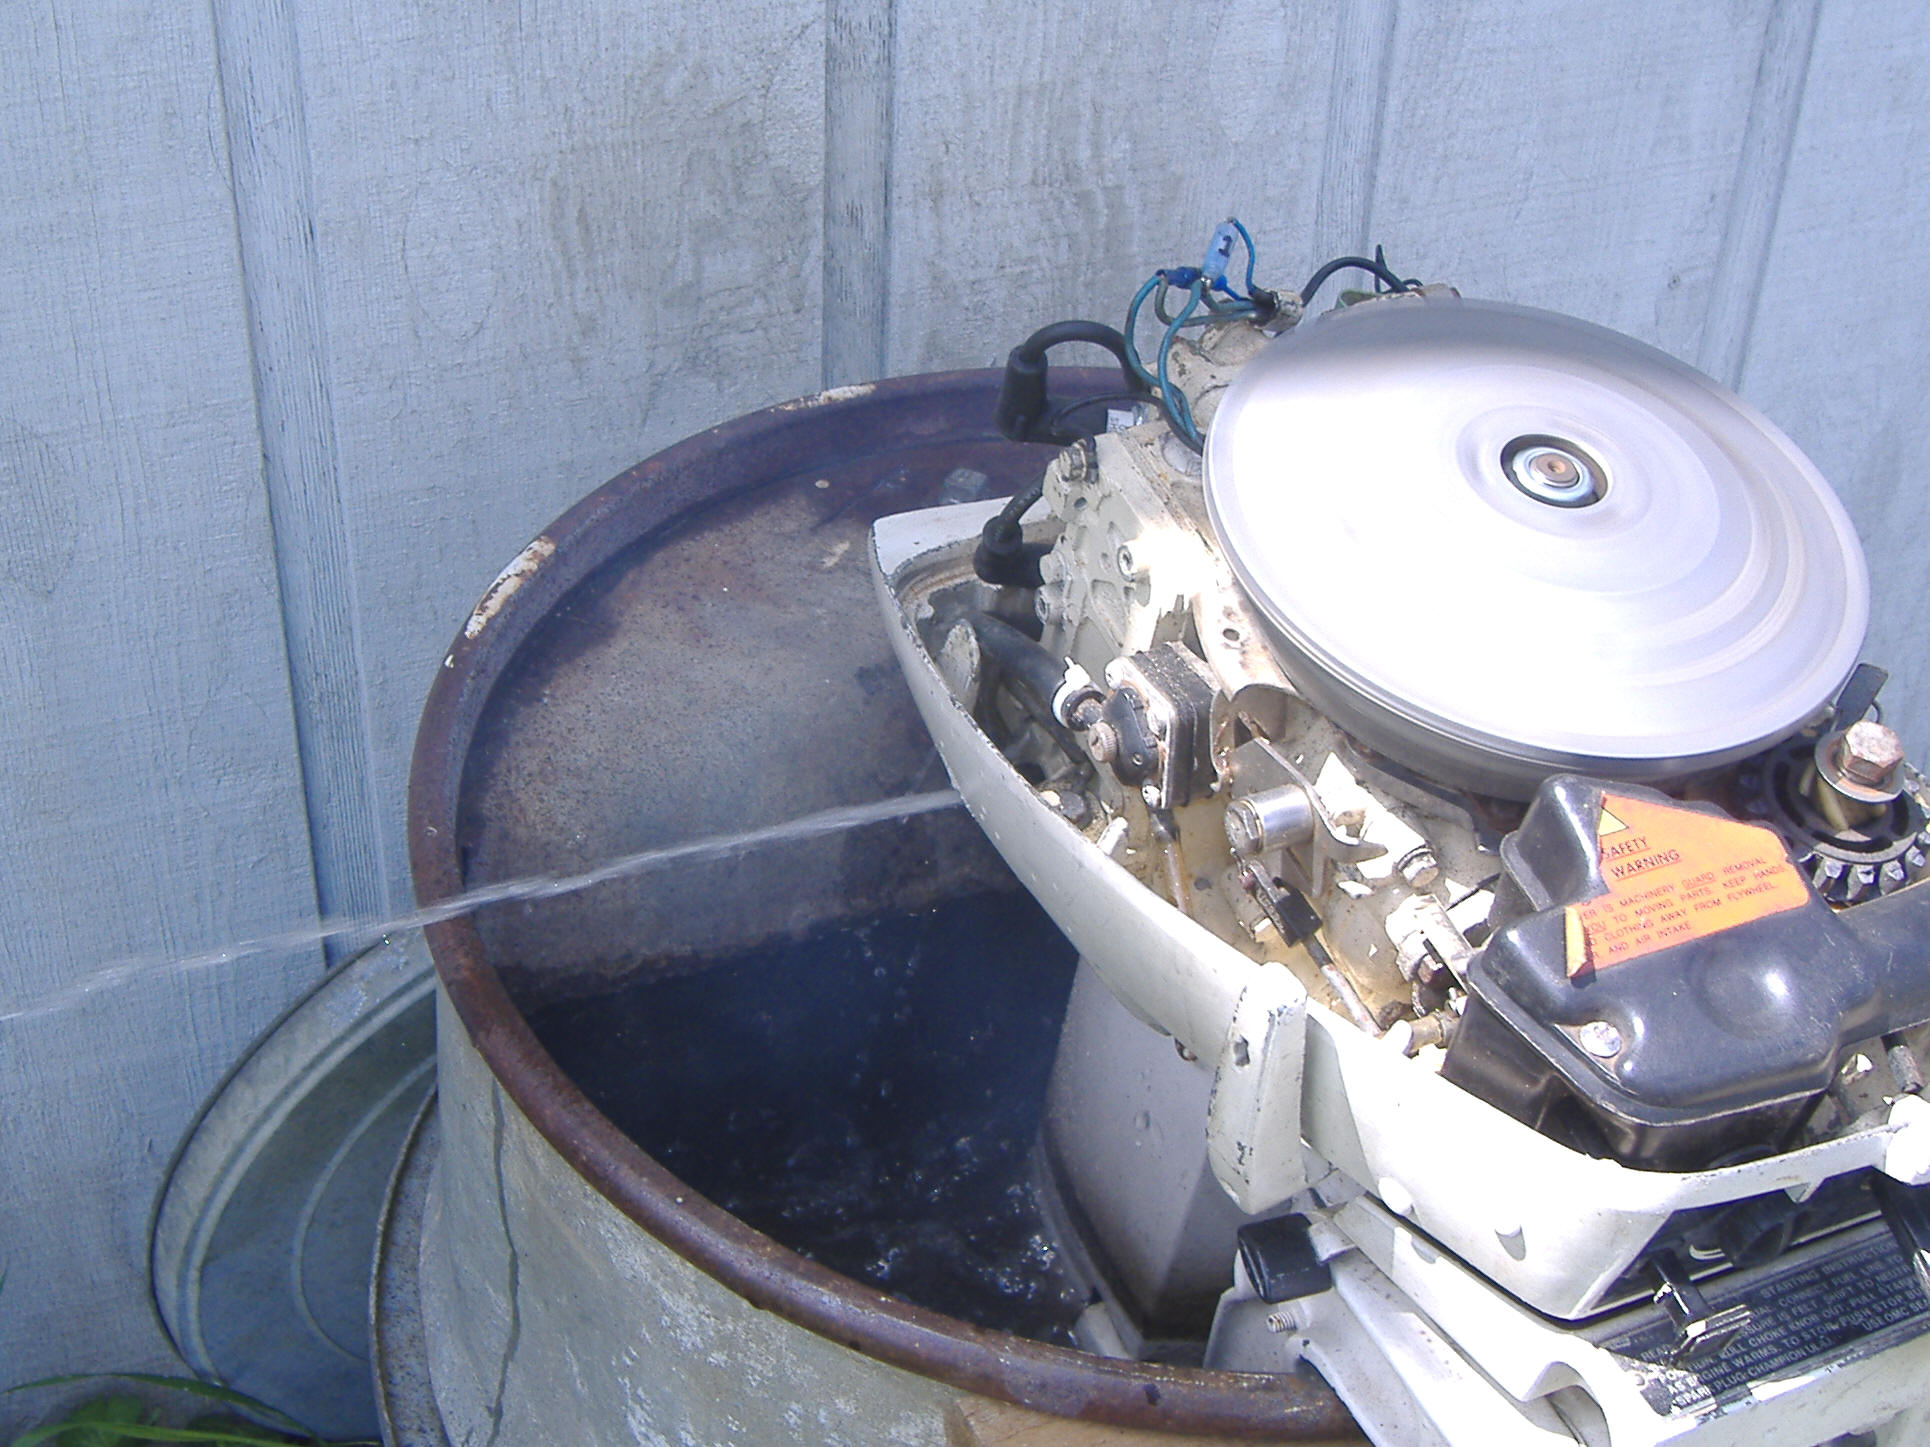 ... Here is the motor running with the new plug screw removed. At a higher  RPM, water squirted over 6 feet.